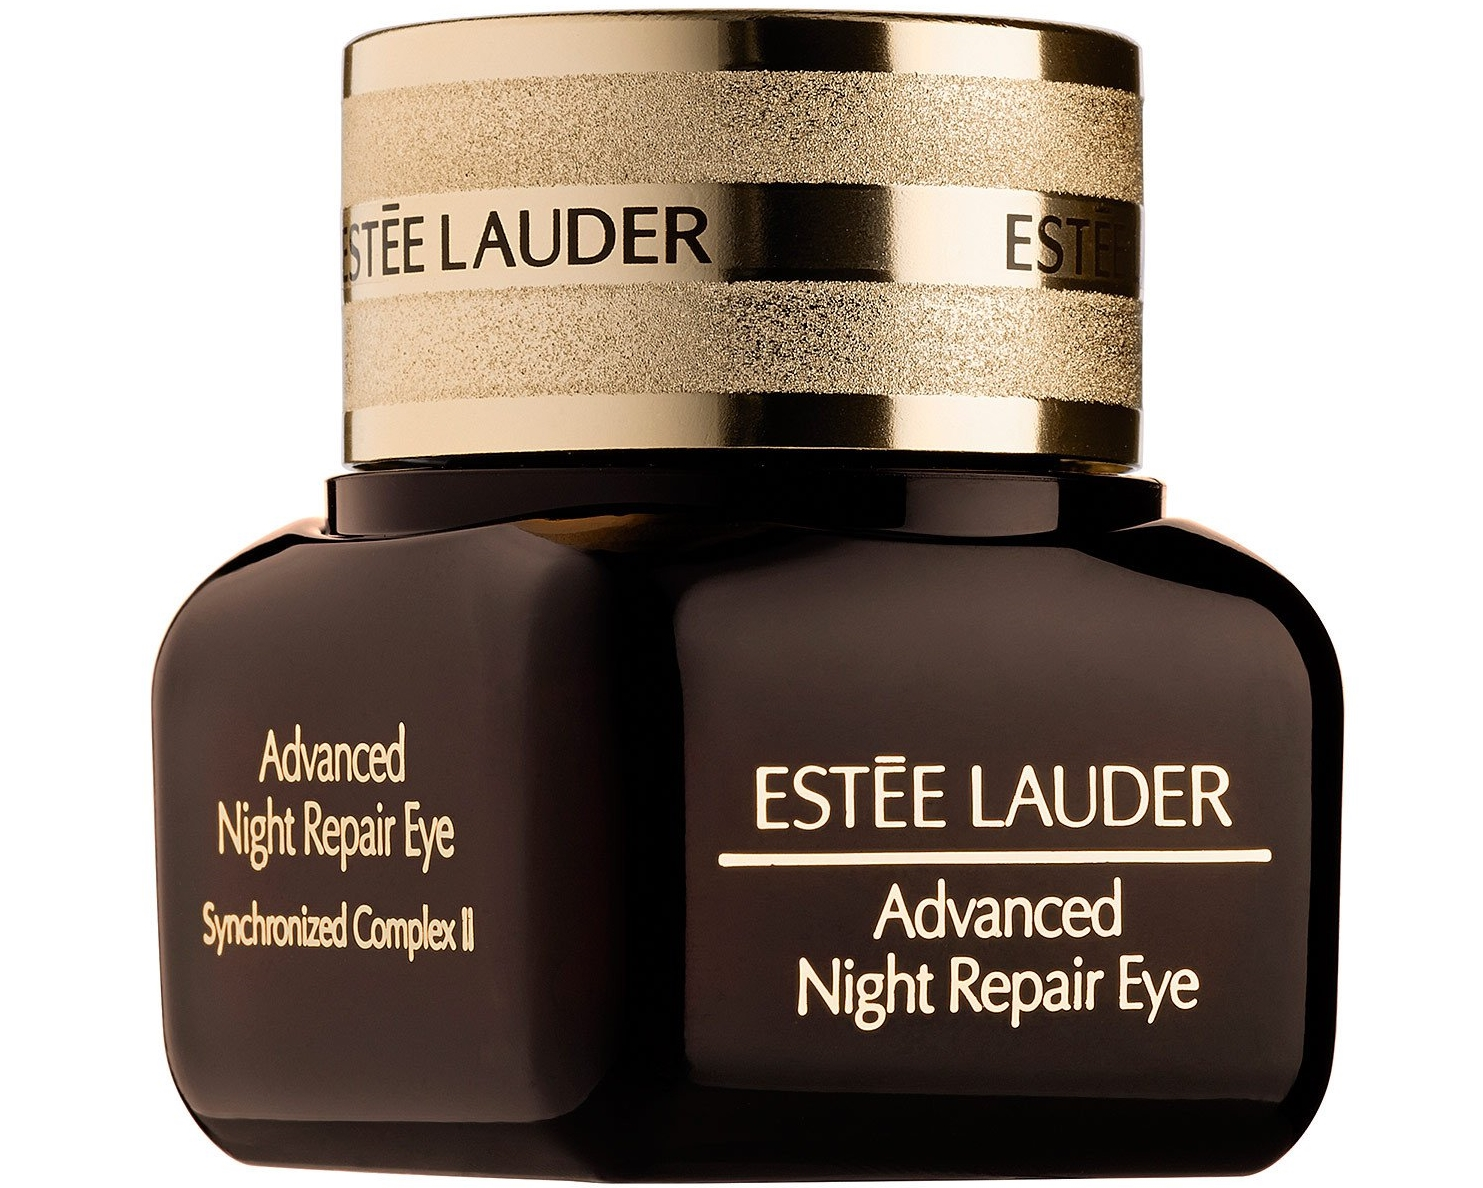 Estee Lauder Advanced Night Repair Eye Synchronized Complex ll - 15 Must Try Products from Estee Lauder India for Blemish & Wrinkle Free Skin